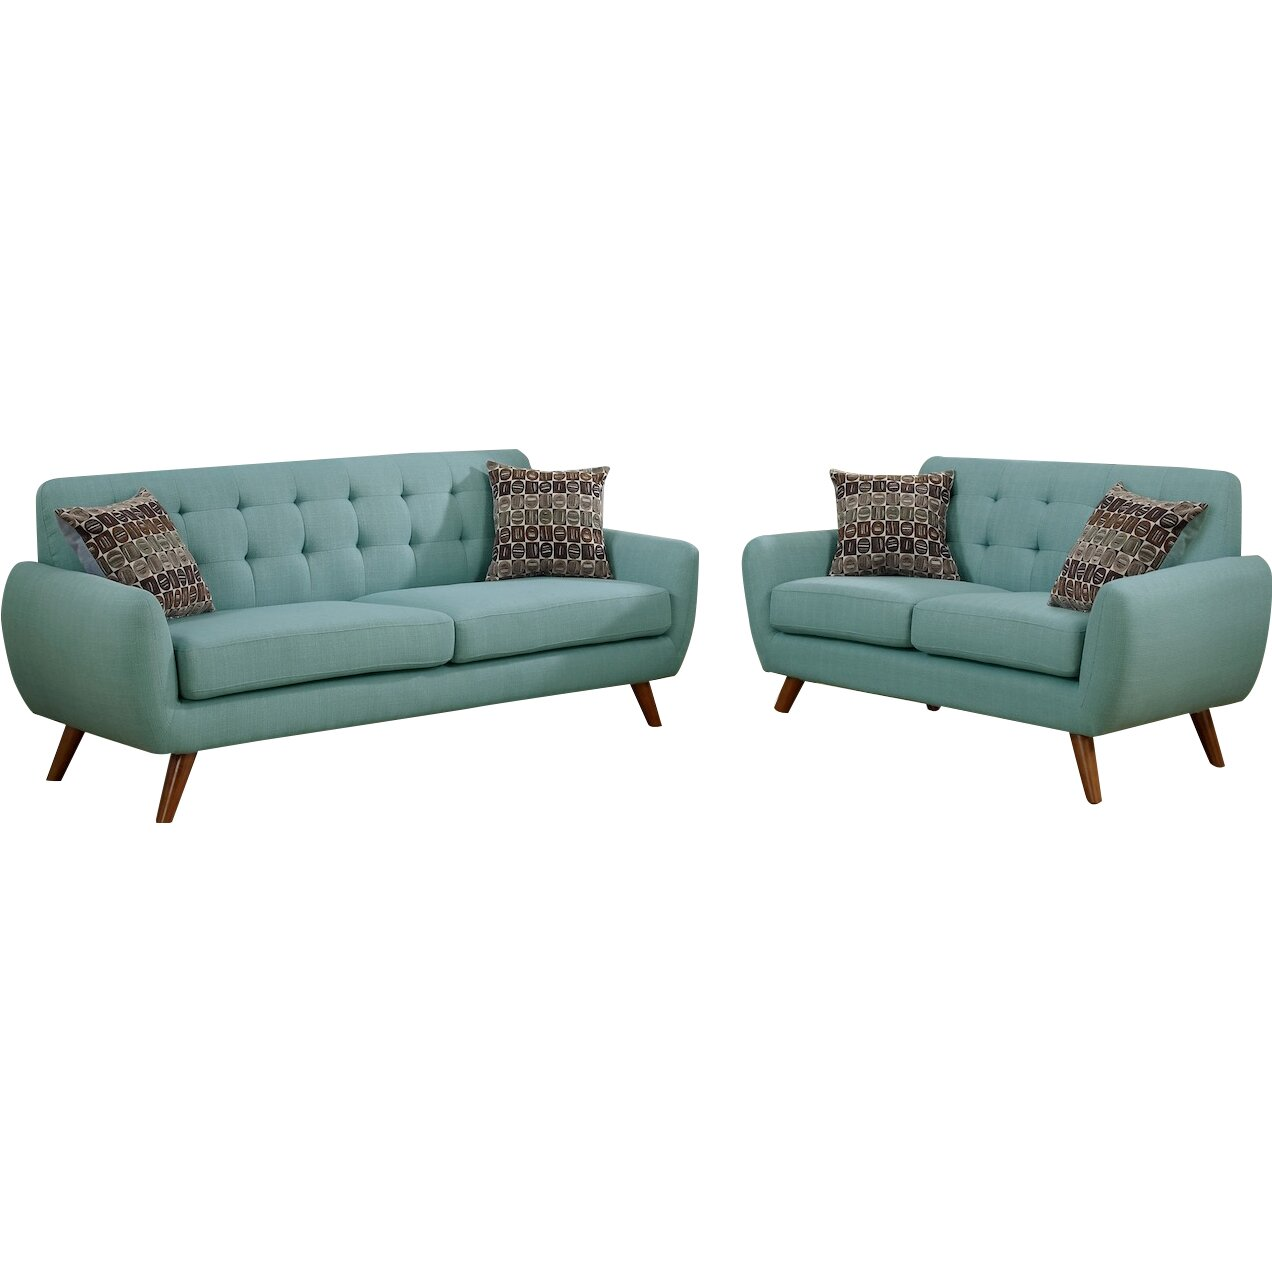 Infini Furnishings Modern Retro Sofa And Loveseat